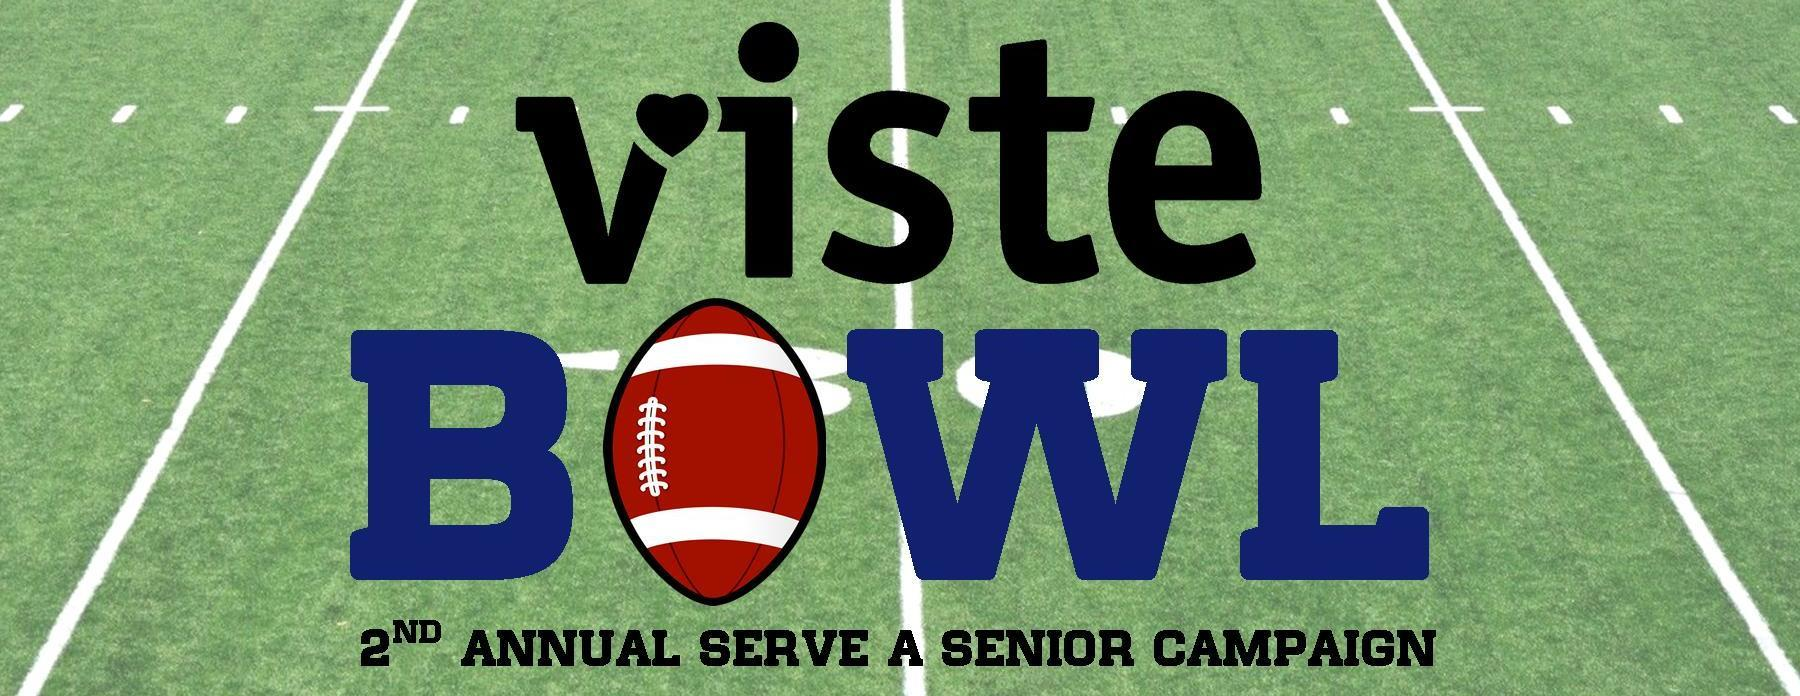 VISTEBowl - 2nd Annual Serve a Senior Campaign